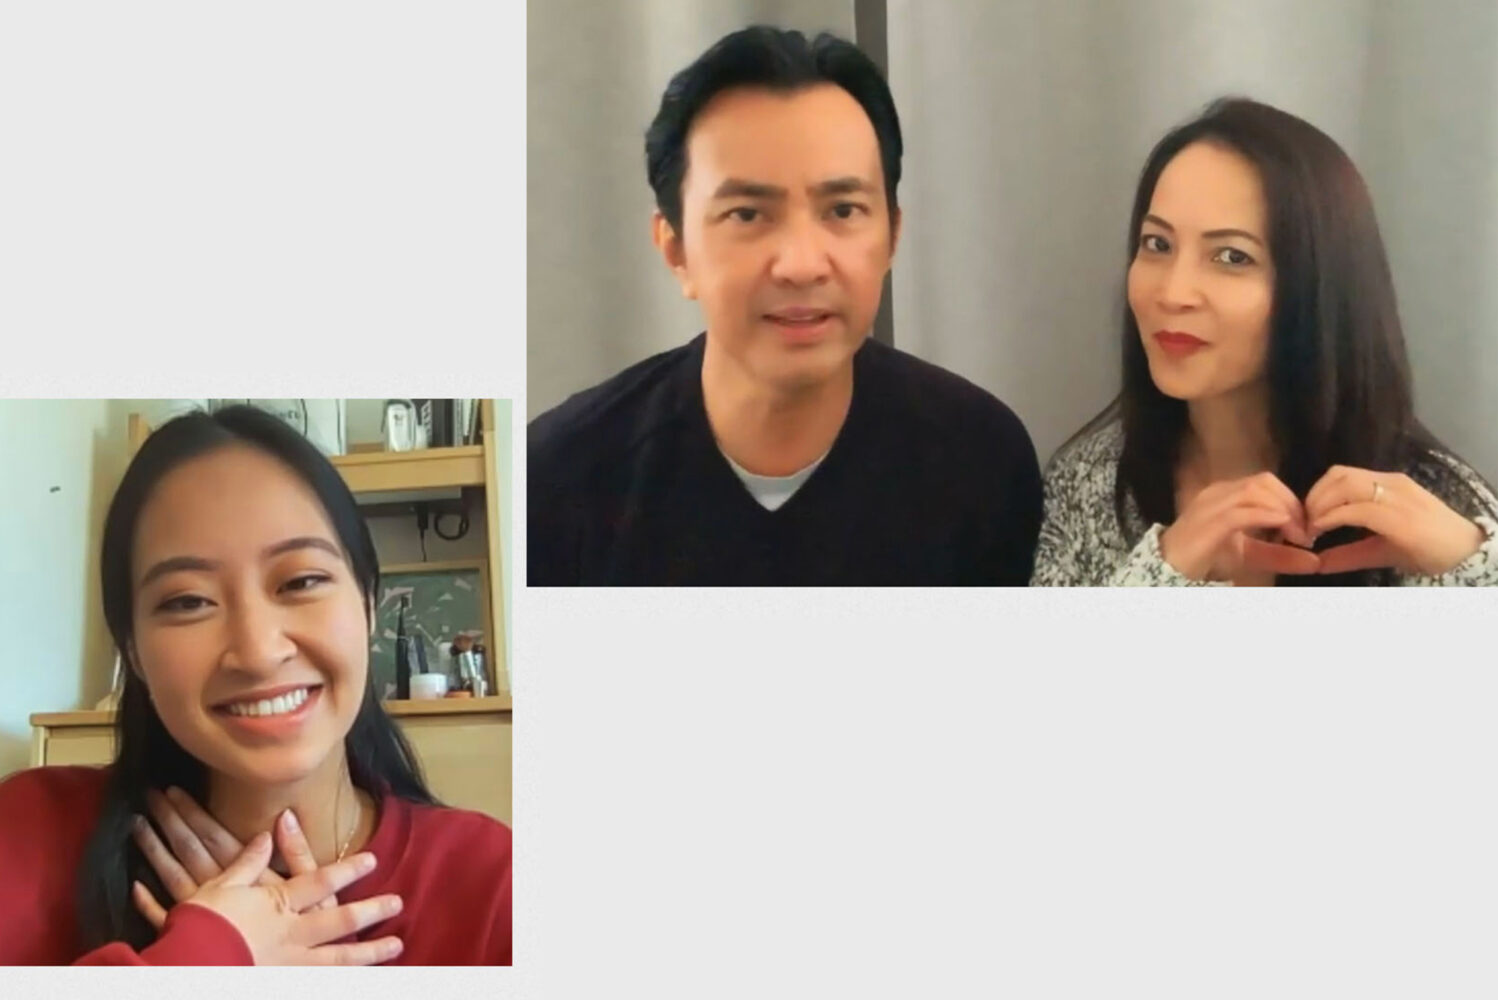 Screenshots of Chloe Torres (Questrom'21) and her parents in California, taken as Chloe watches the video sent in by her parents. Chloe brings her hands to her chest and smiles, and her mom makes a shape of a heart with her hands.